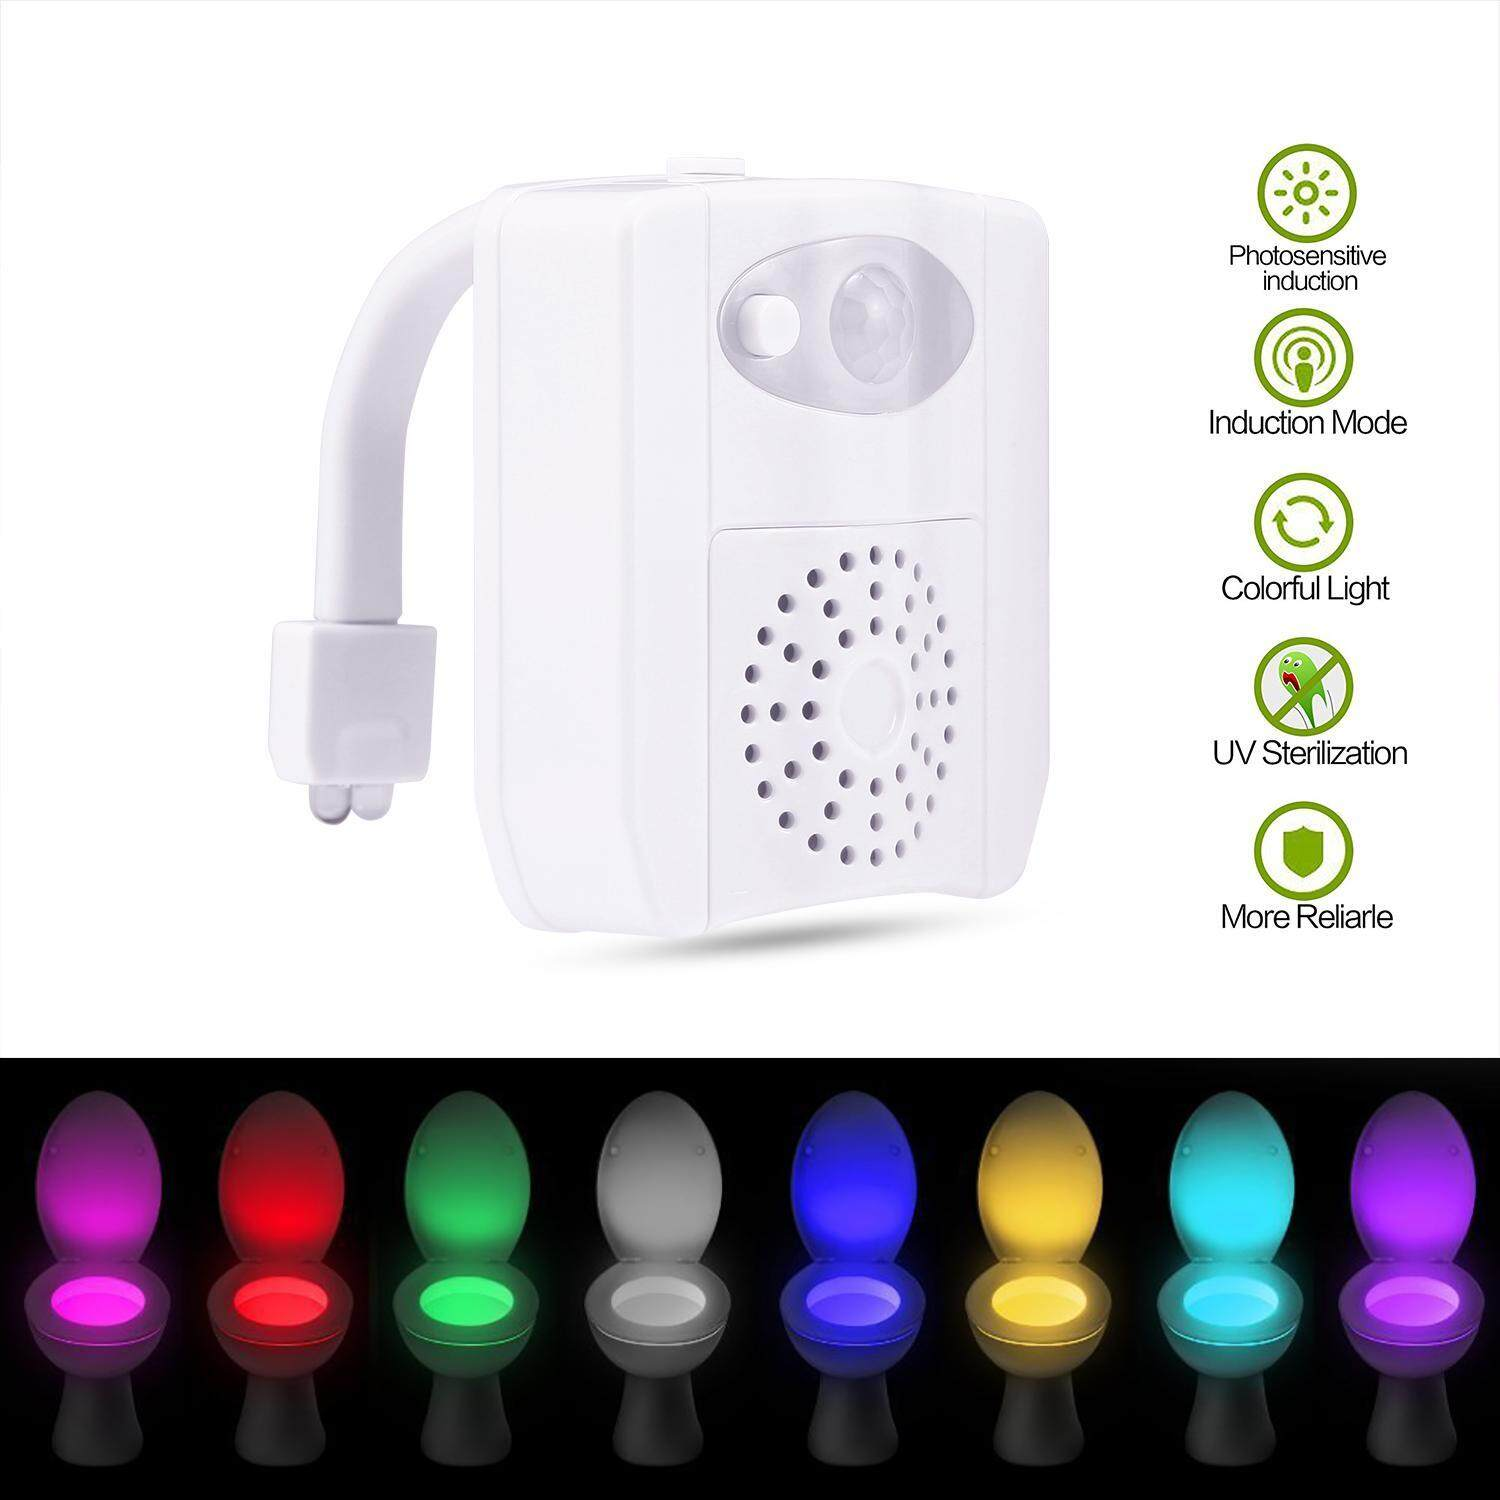 boyun UV Toilet Light, Glow Bowl Toilet Light With Motion Detection Sensor 2pcs Led Toilet Seat Light With 16 Variational Colors Changing For Toilet Closestool. - intl